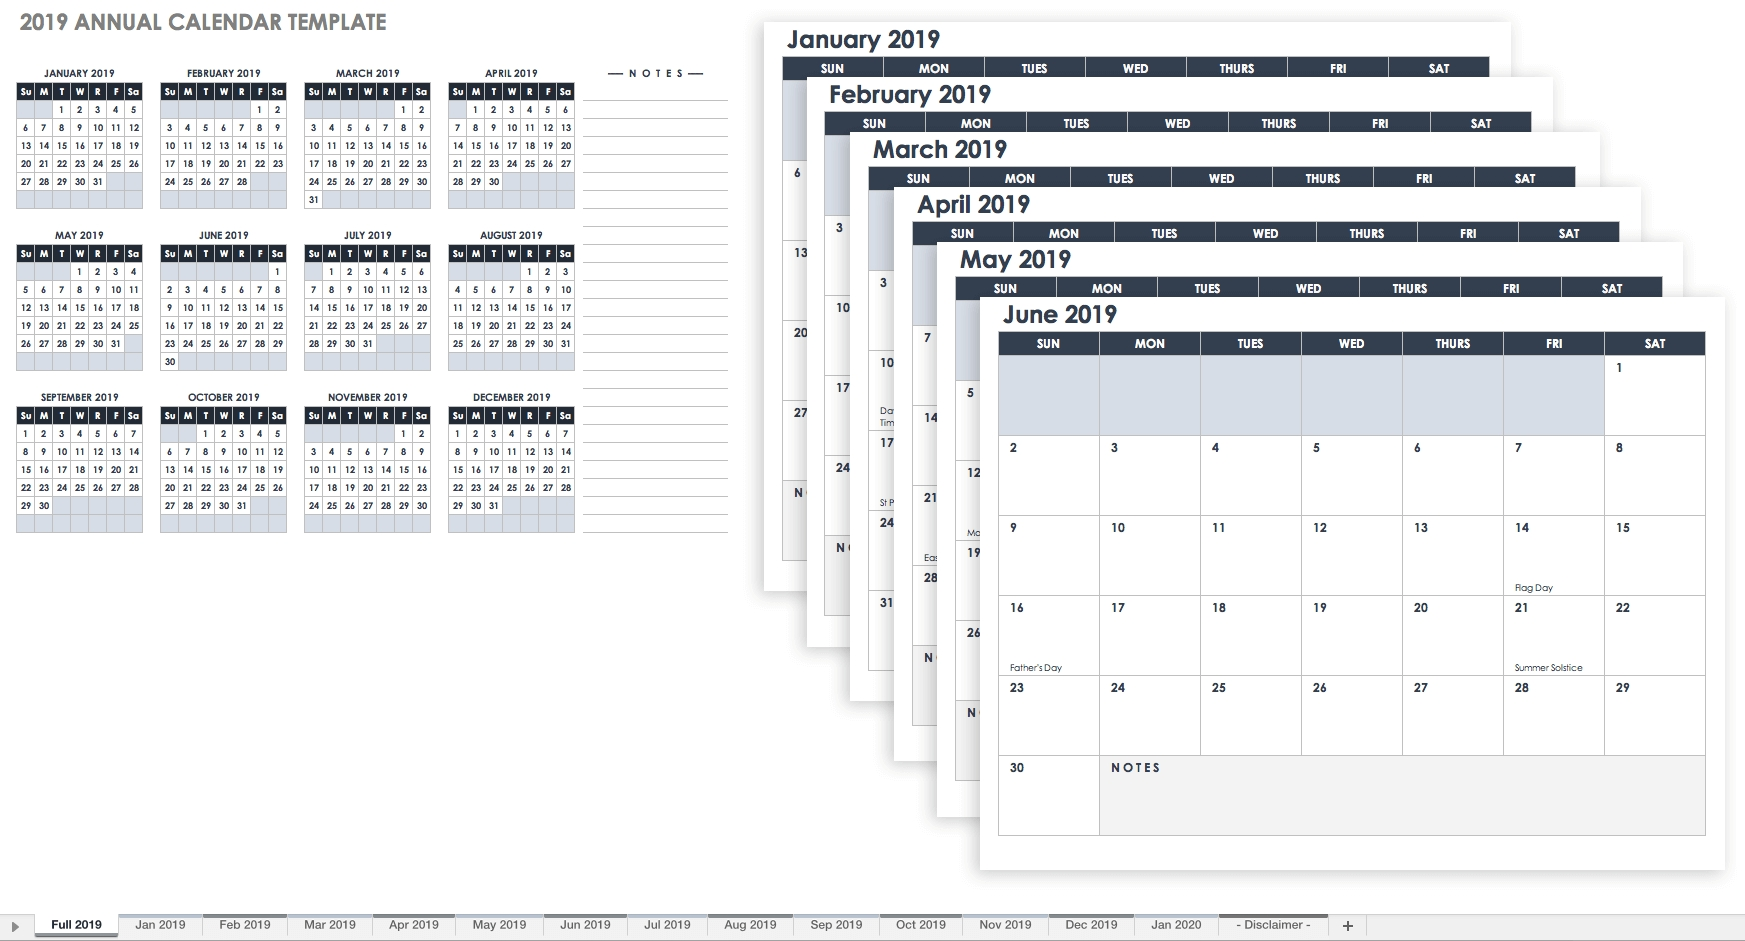 15 Free Monthly Calendar Templates | Smartsheet intended for Blank Monthly Calendar Monday Start